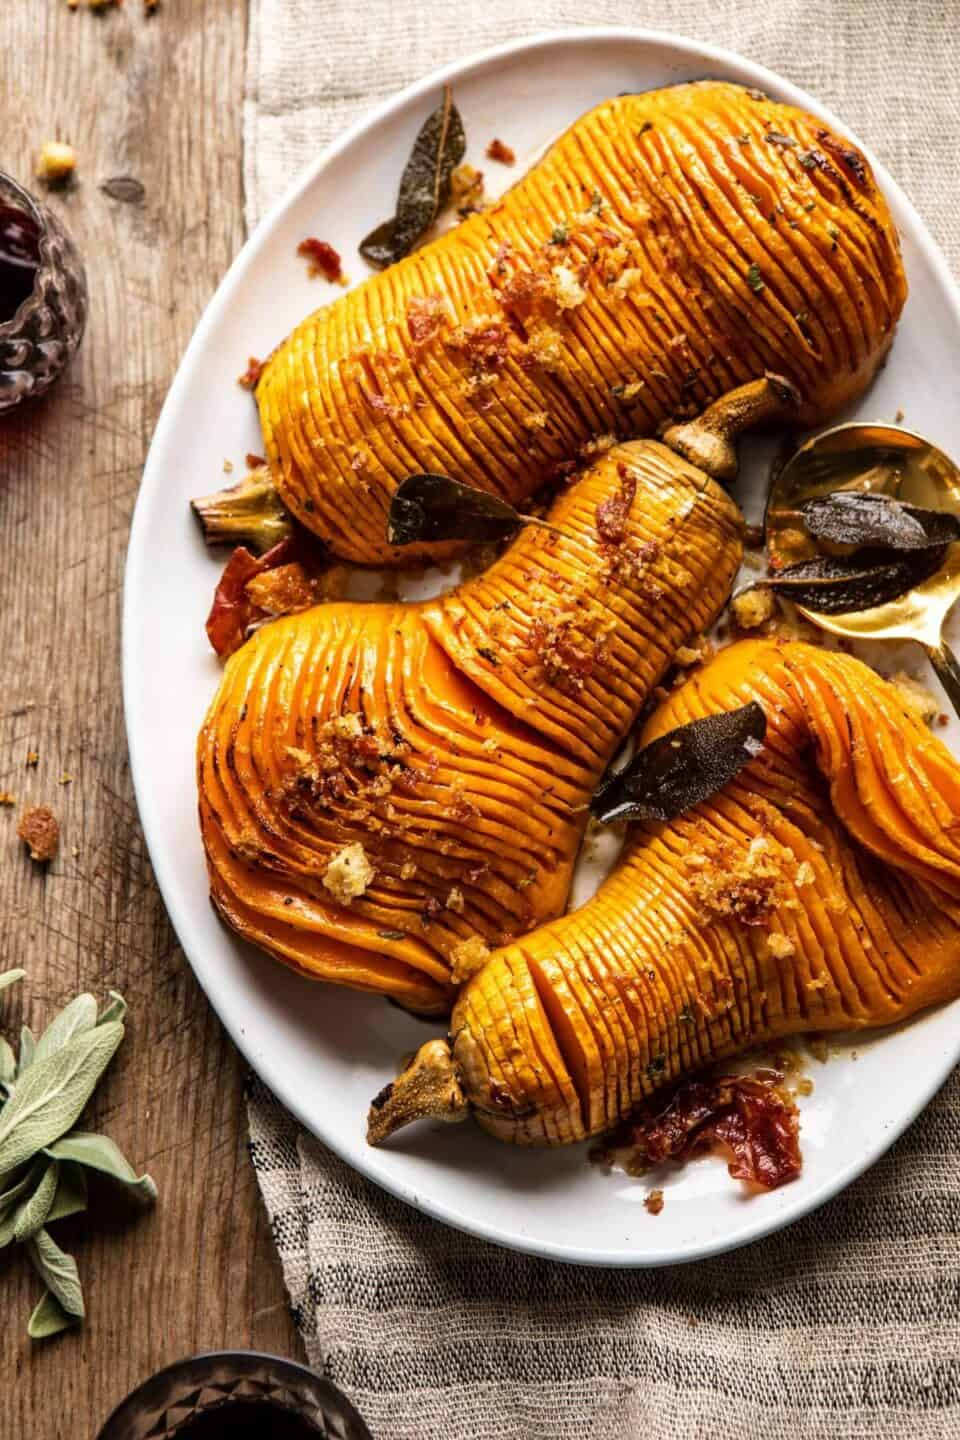 35 Butternut Squash Recipes to Make this Fall